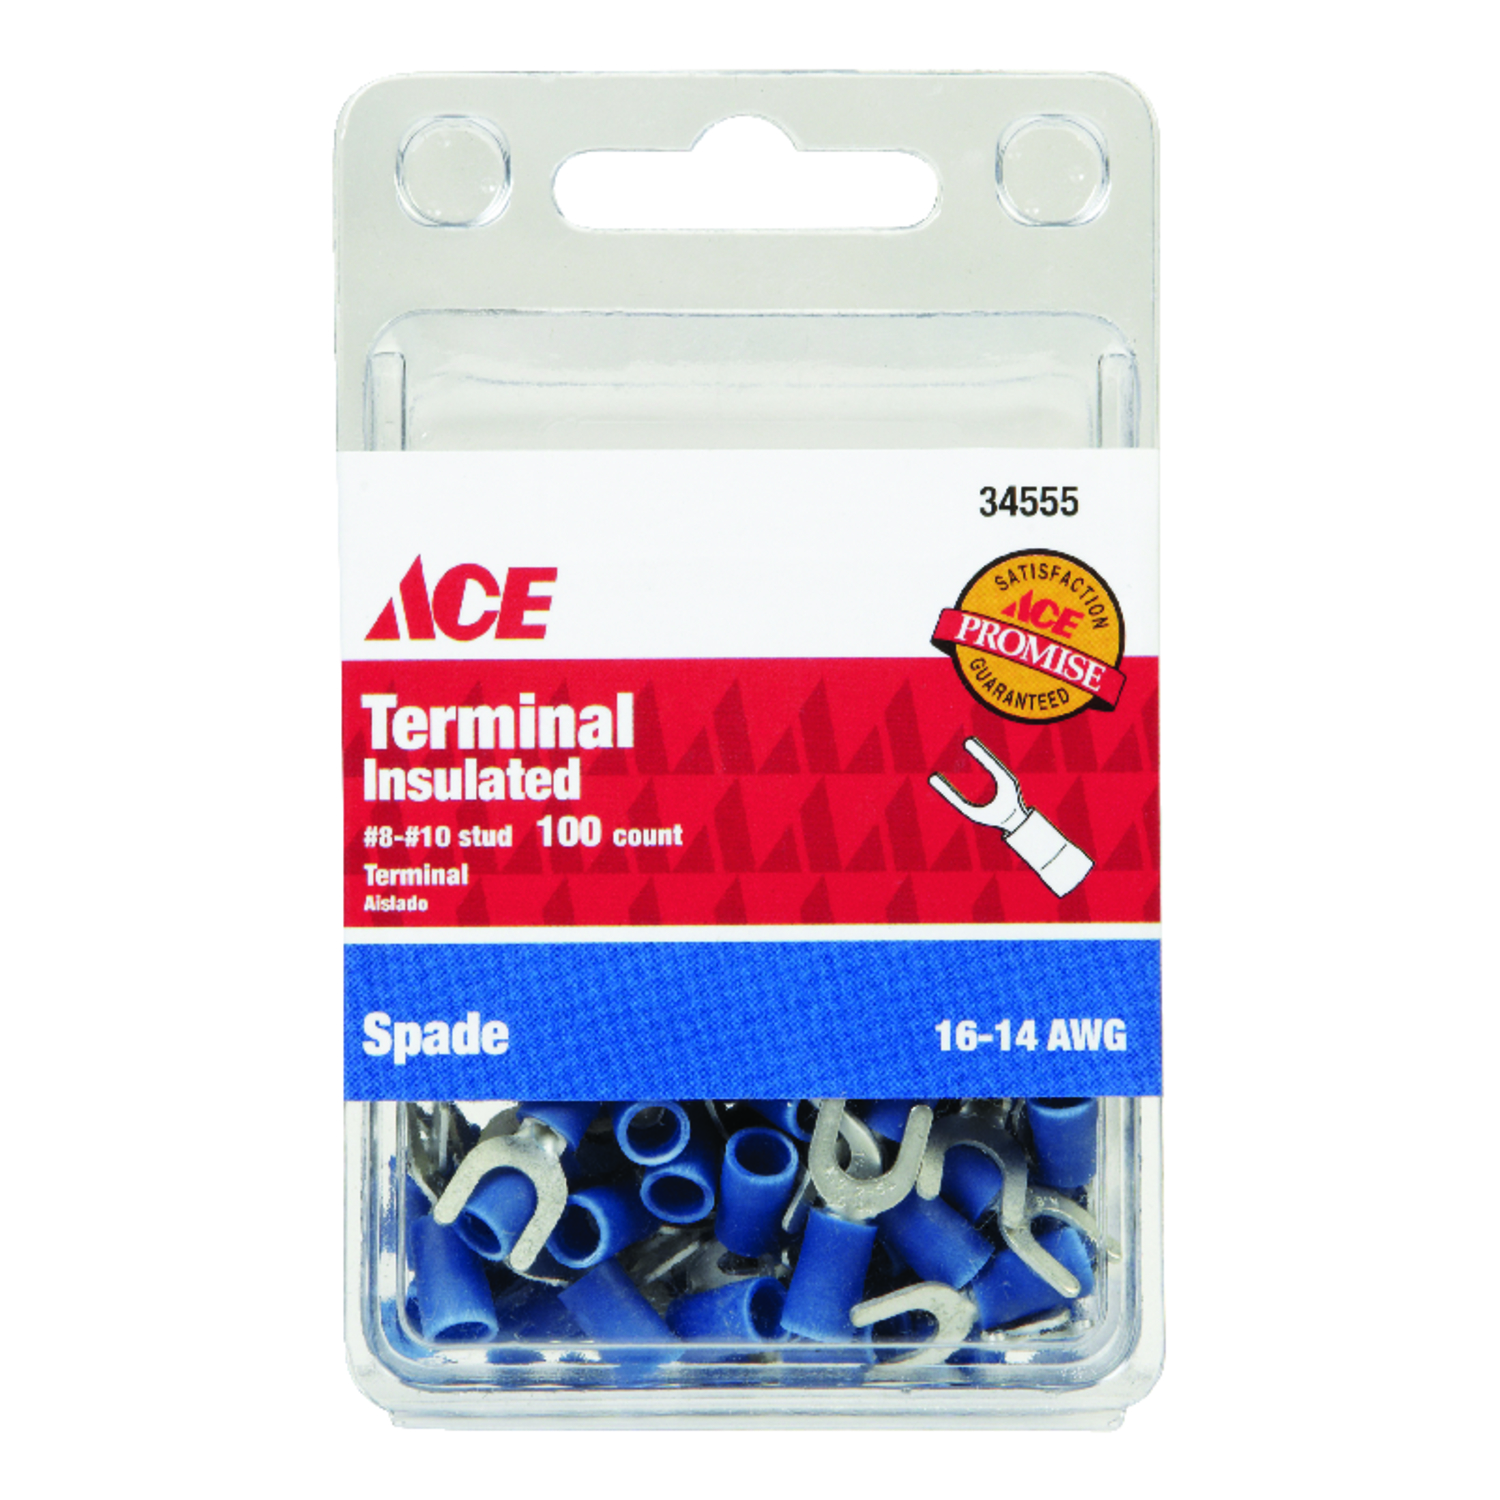 Ace  Insulated Wire  Spade Terminal  100  16-14 AWG